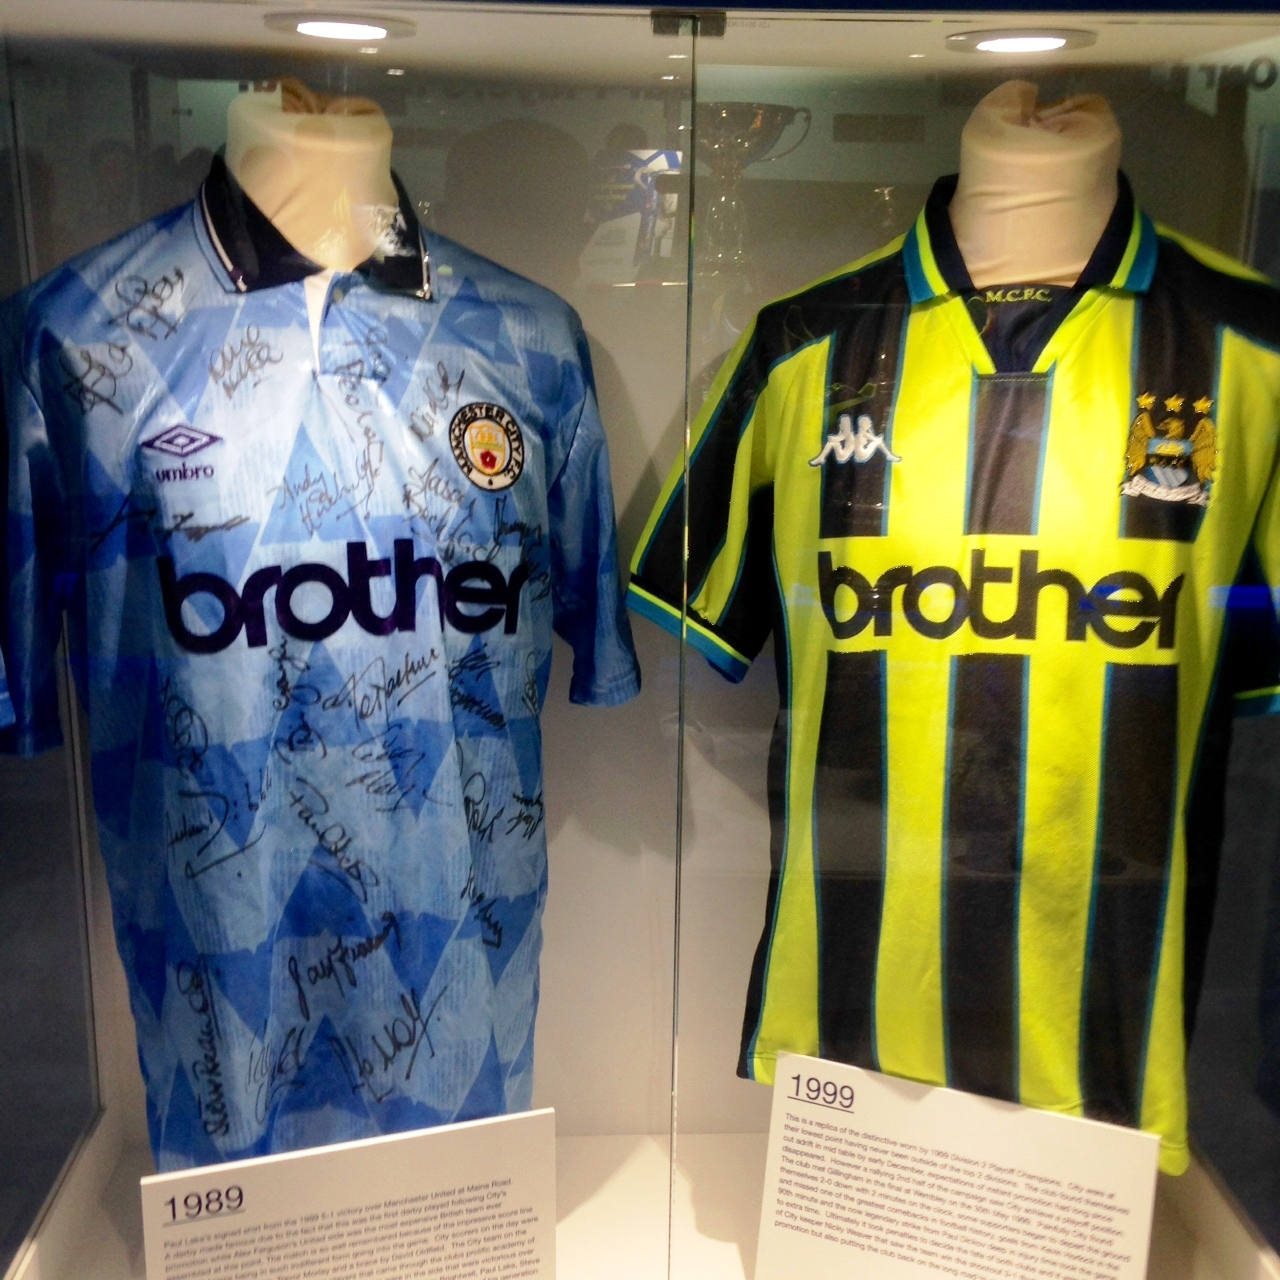 Brothers in Arms - City's battle colours from 1989 & 1999.